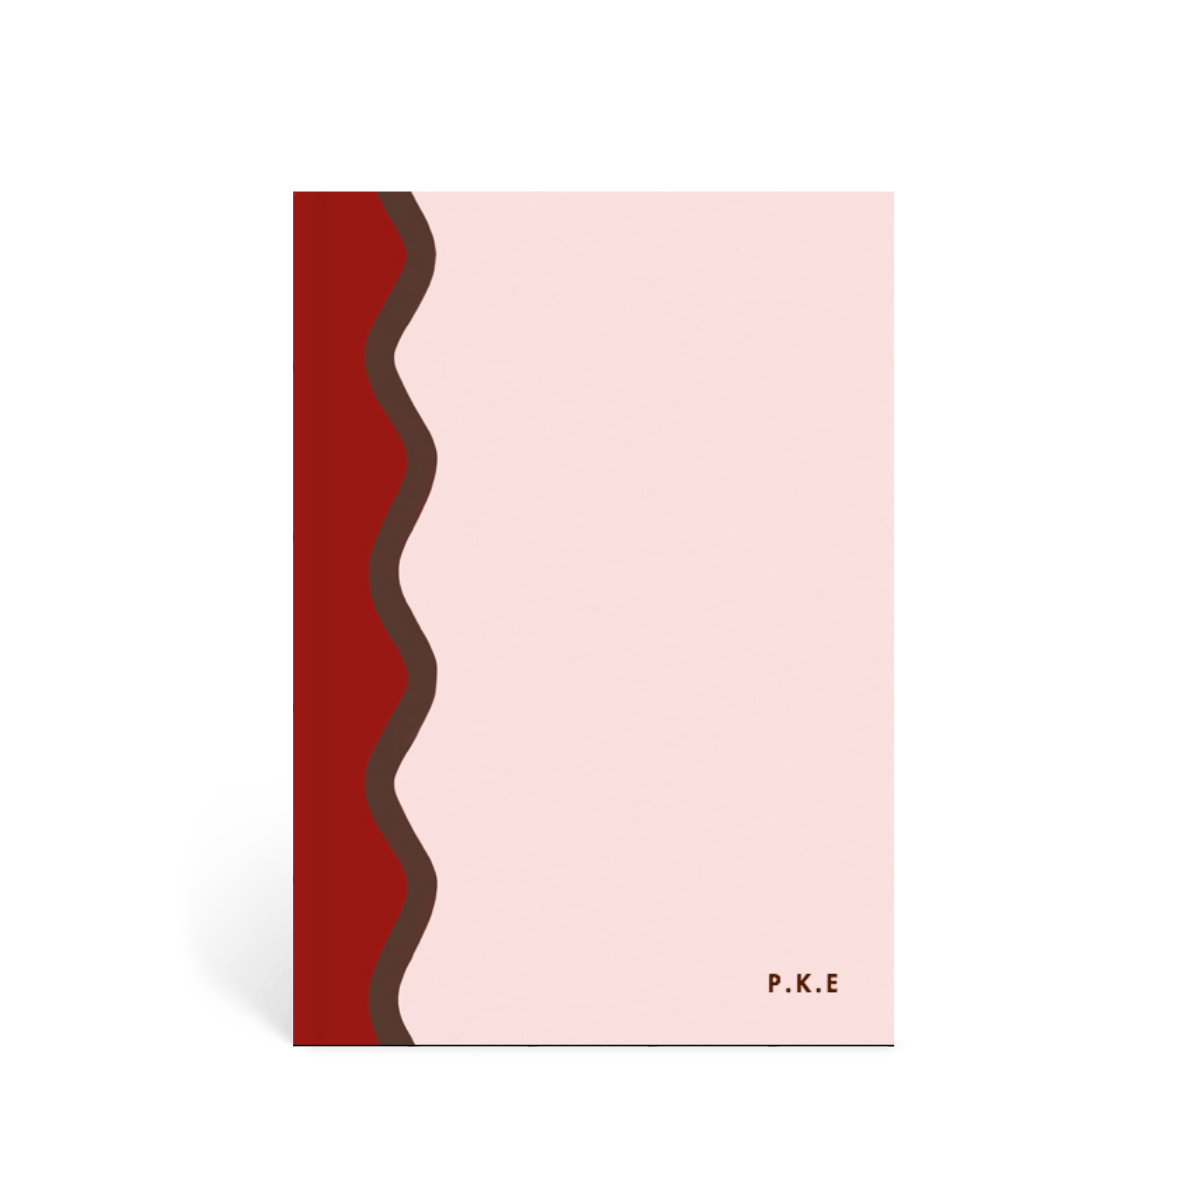 Https%3a%2f%2fwww.papier.com%2fproduct image%2f75559%2f25%2fscallop spine 17716 front 1557496336.png?ixlib=rb 1.1